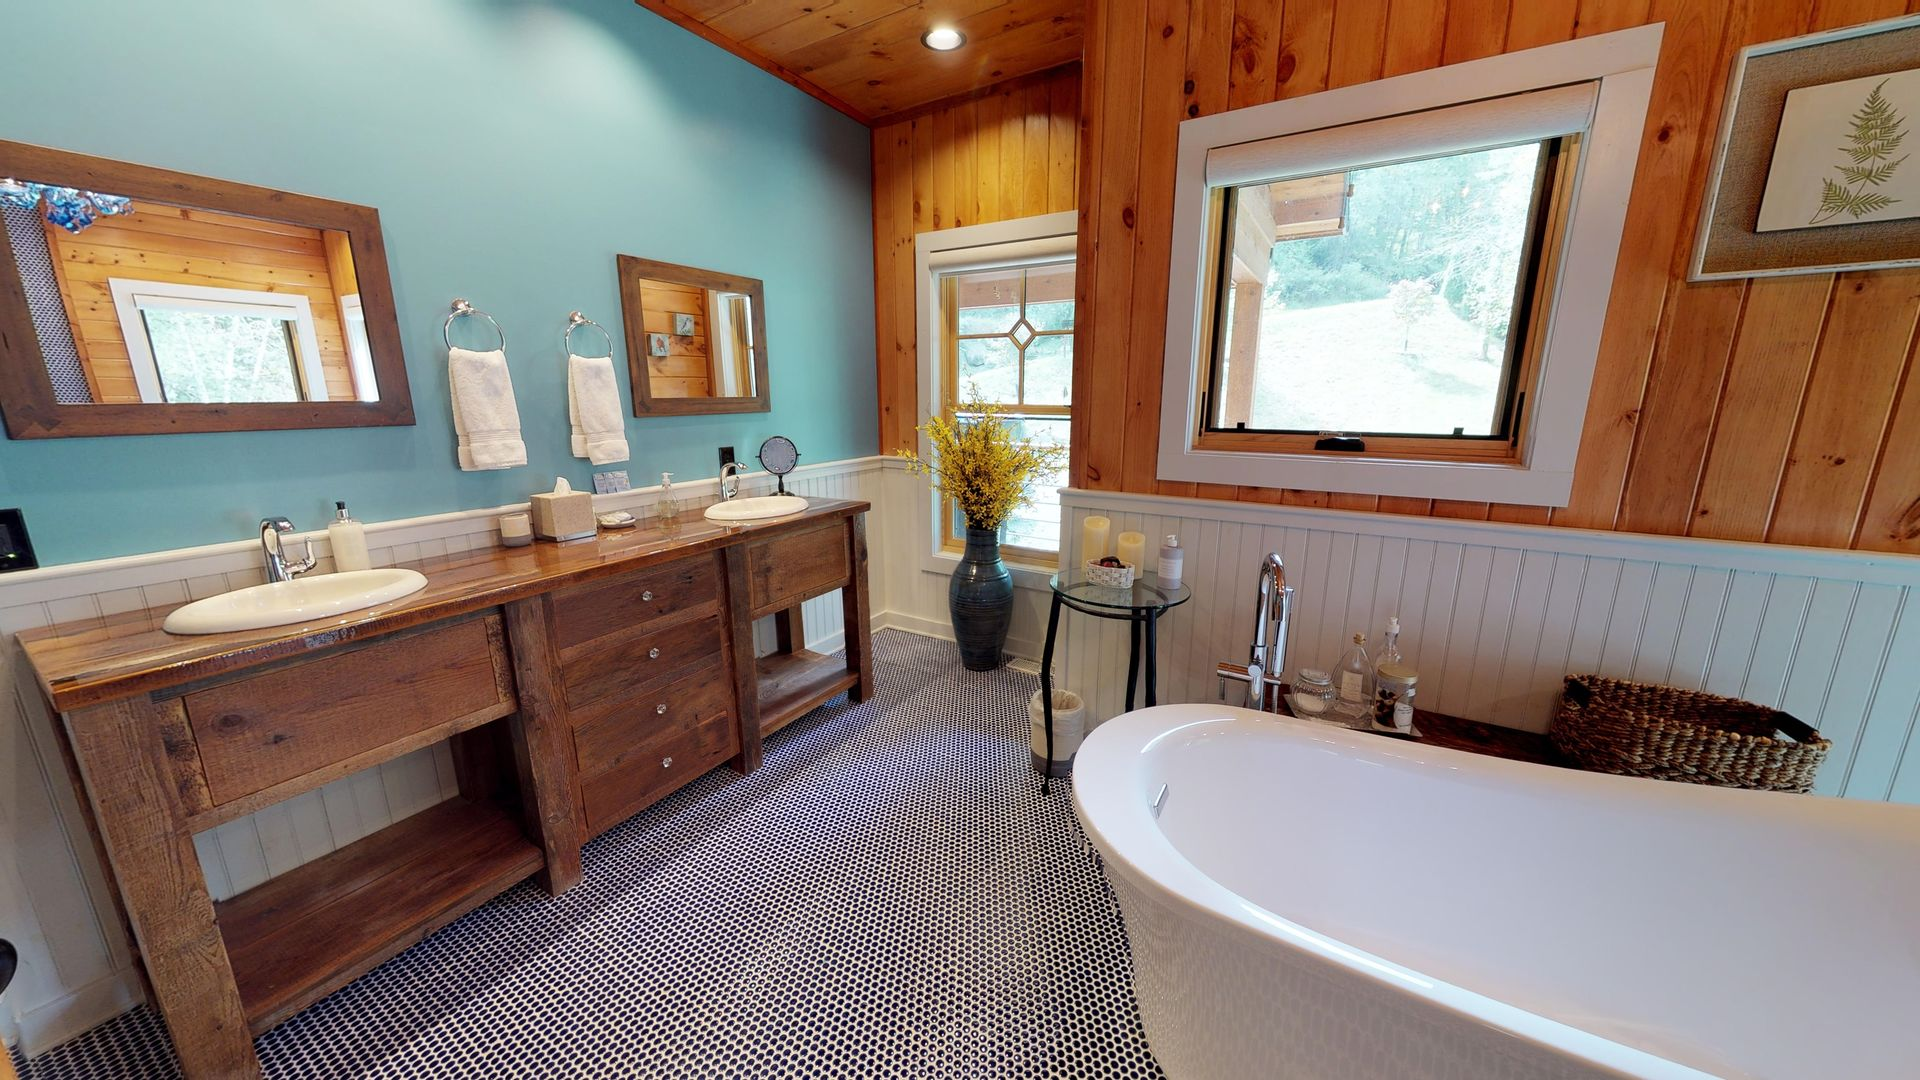 Bathroom with double vanities and tub